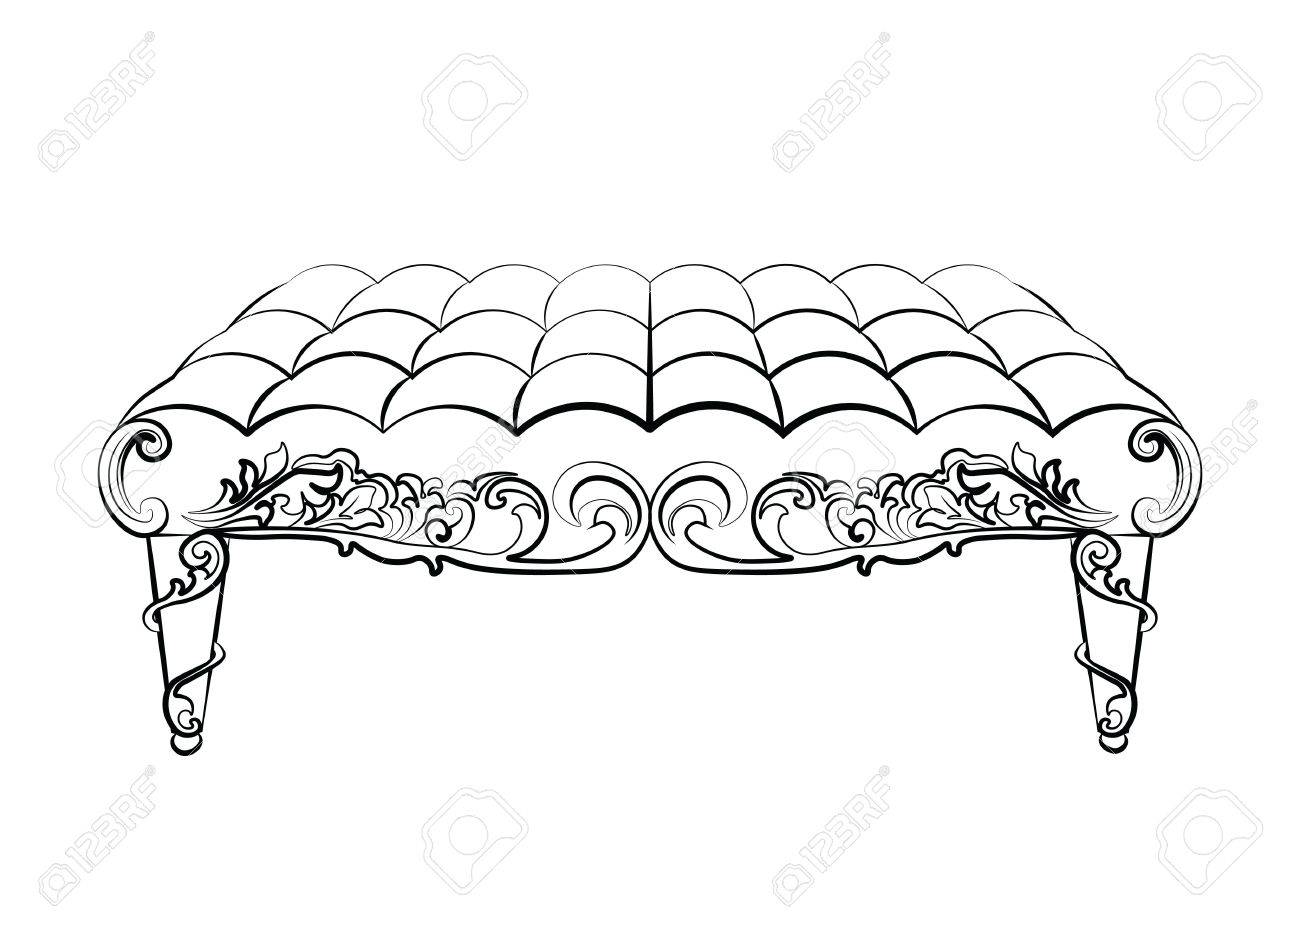 Rococo furniture sketch - Bench Furniture In Classic Rococo Style Ornament Vector Sketch Stock Vector 58420490